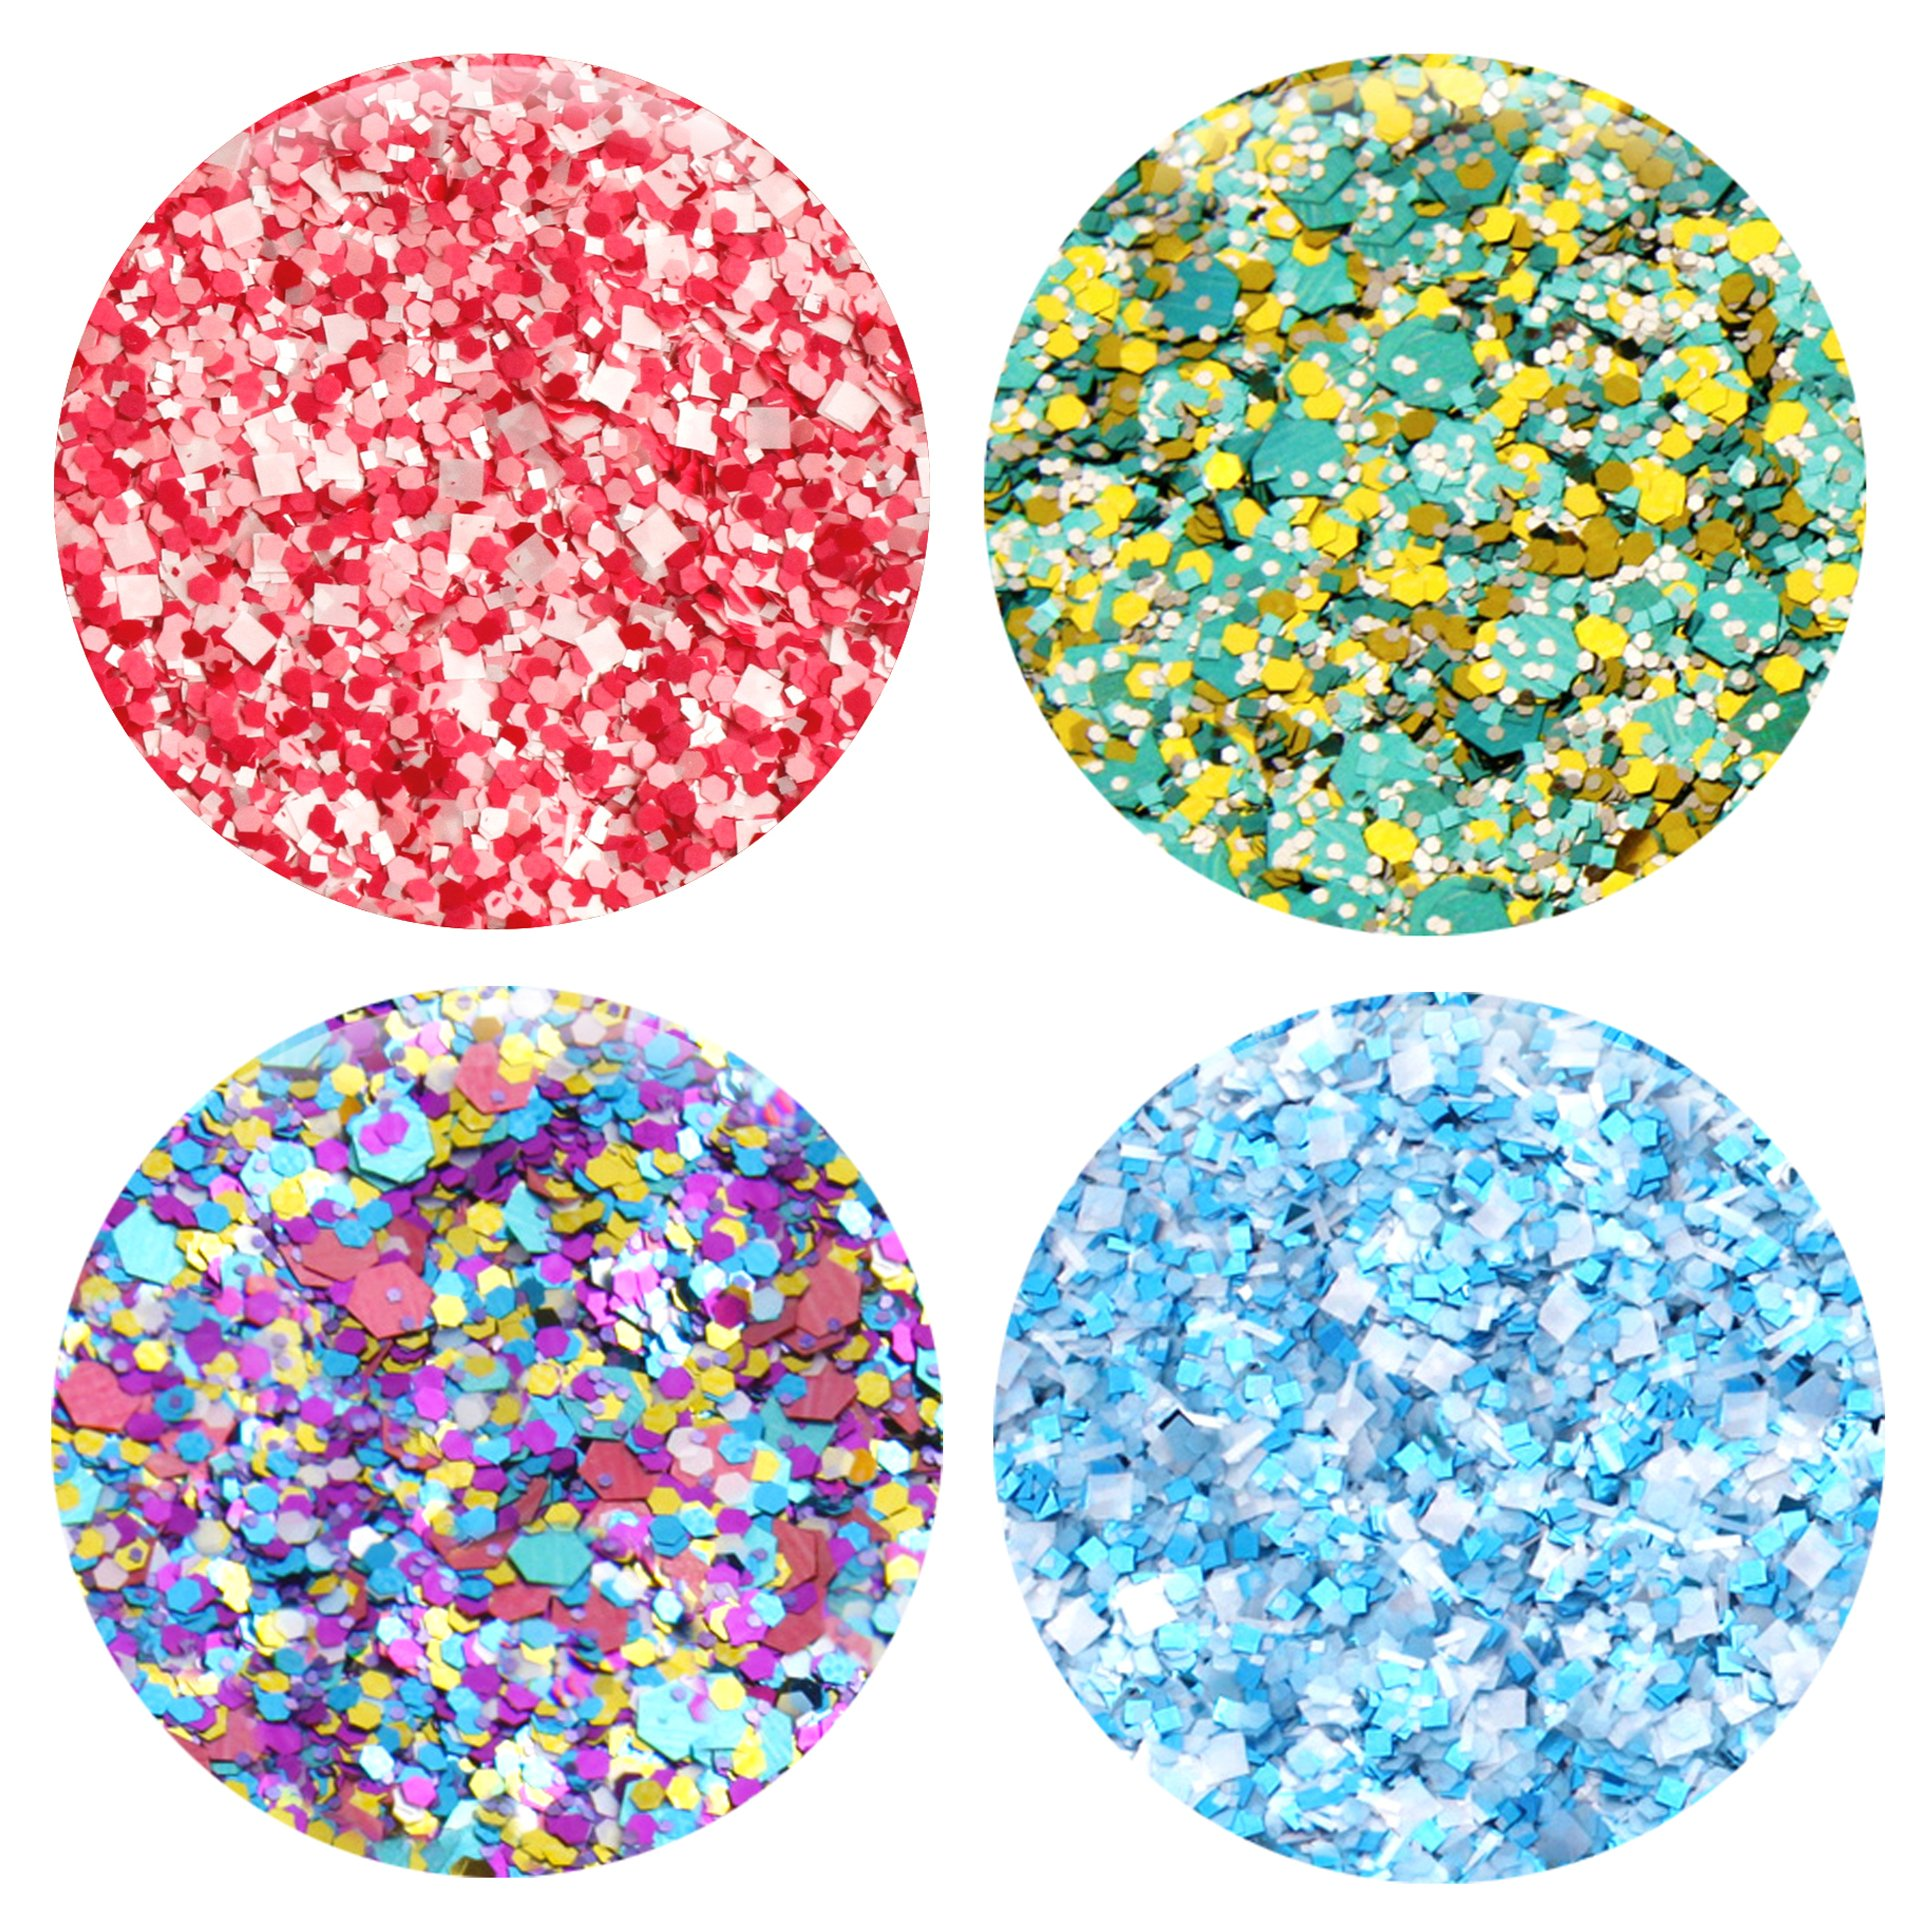 Mixed Glitter 20 Piece Kit - Includes Solvent Resistant Dust, Powder, Hexagon, Holographic, Matte Glitters - Great for Nail Art Polish, Gels, Art and Crafts, Paints & Acrylics Supplies - 1/4 OZ Jars by Glitties (Image #4)